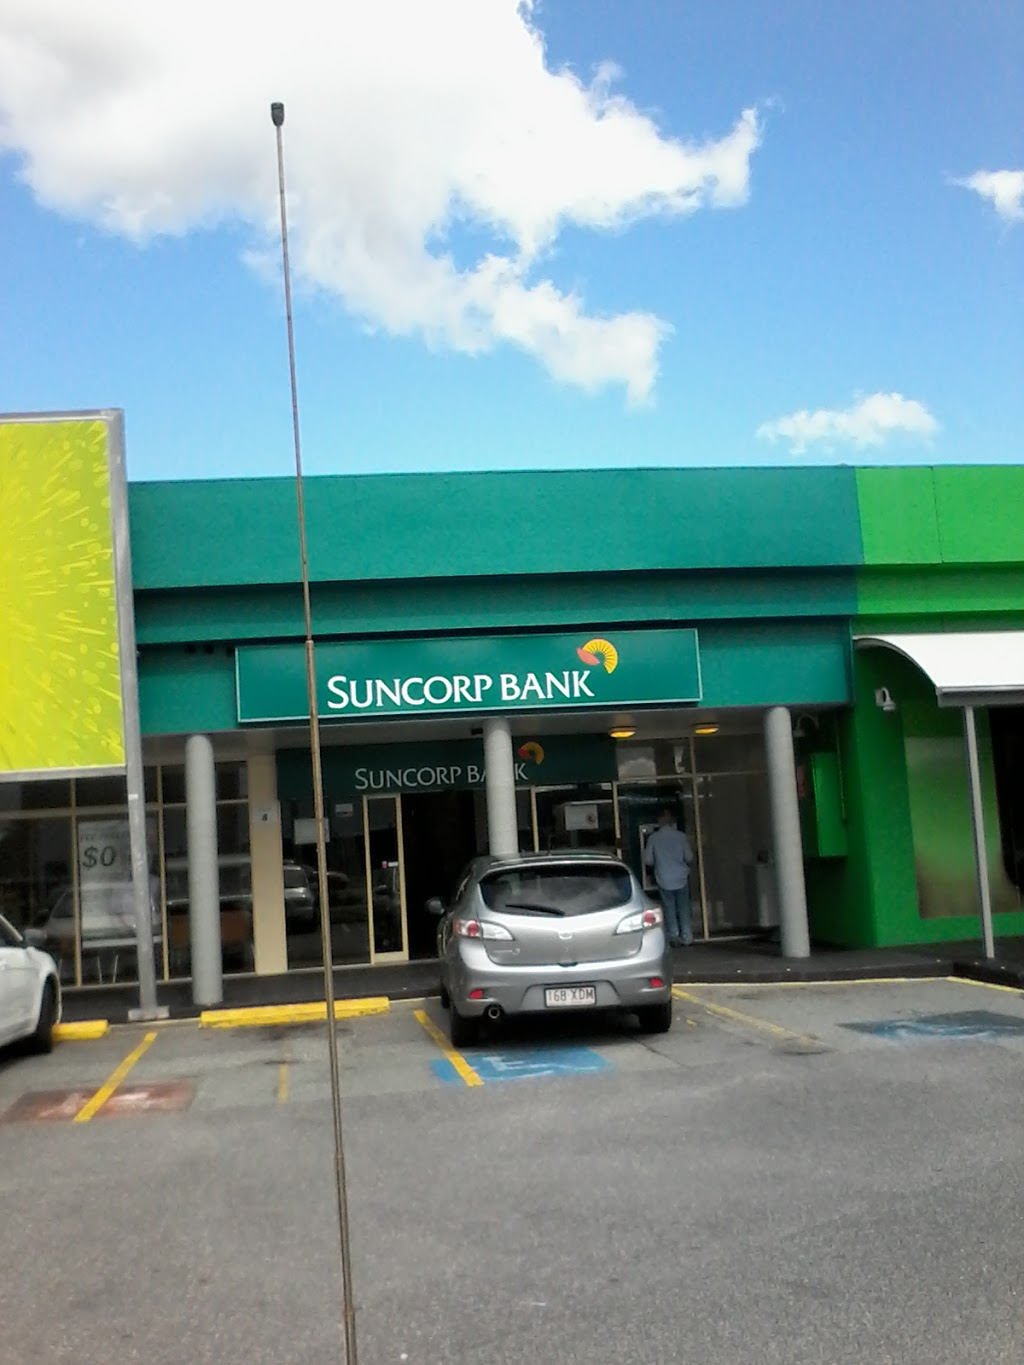 Suncorp Bank | bank | Morayfield Shopping Centre, 8/171 Morayfield Rd, Morayfield QLD 4506, Australia | 131155 OR +61 131155